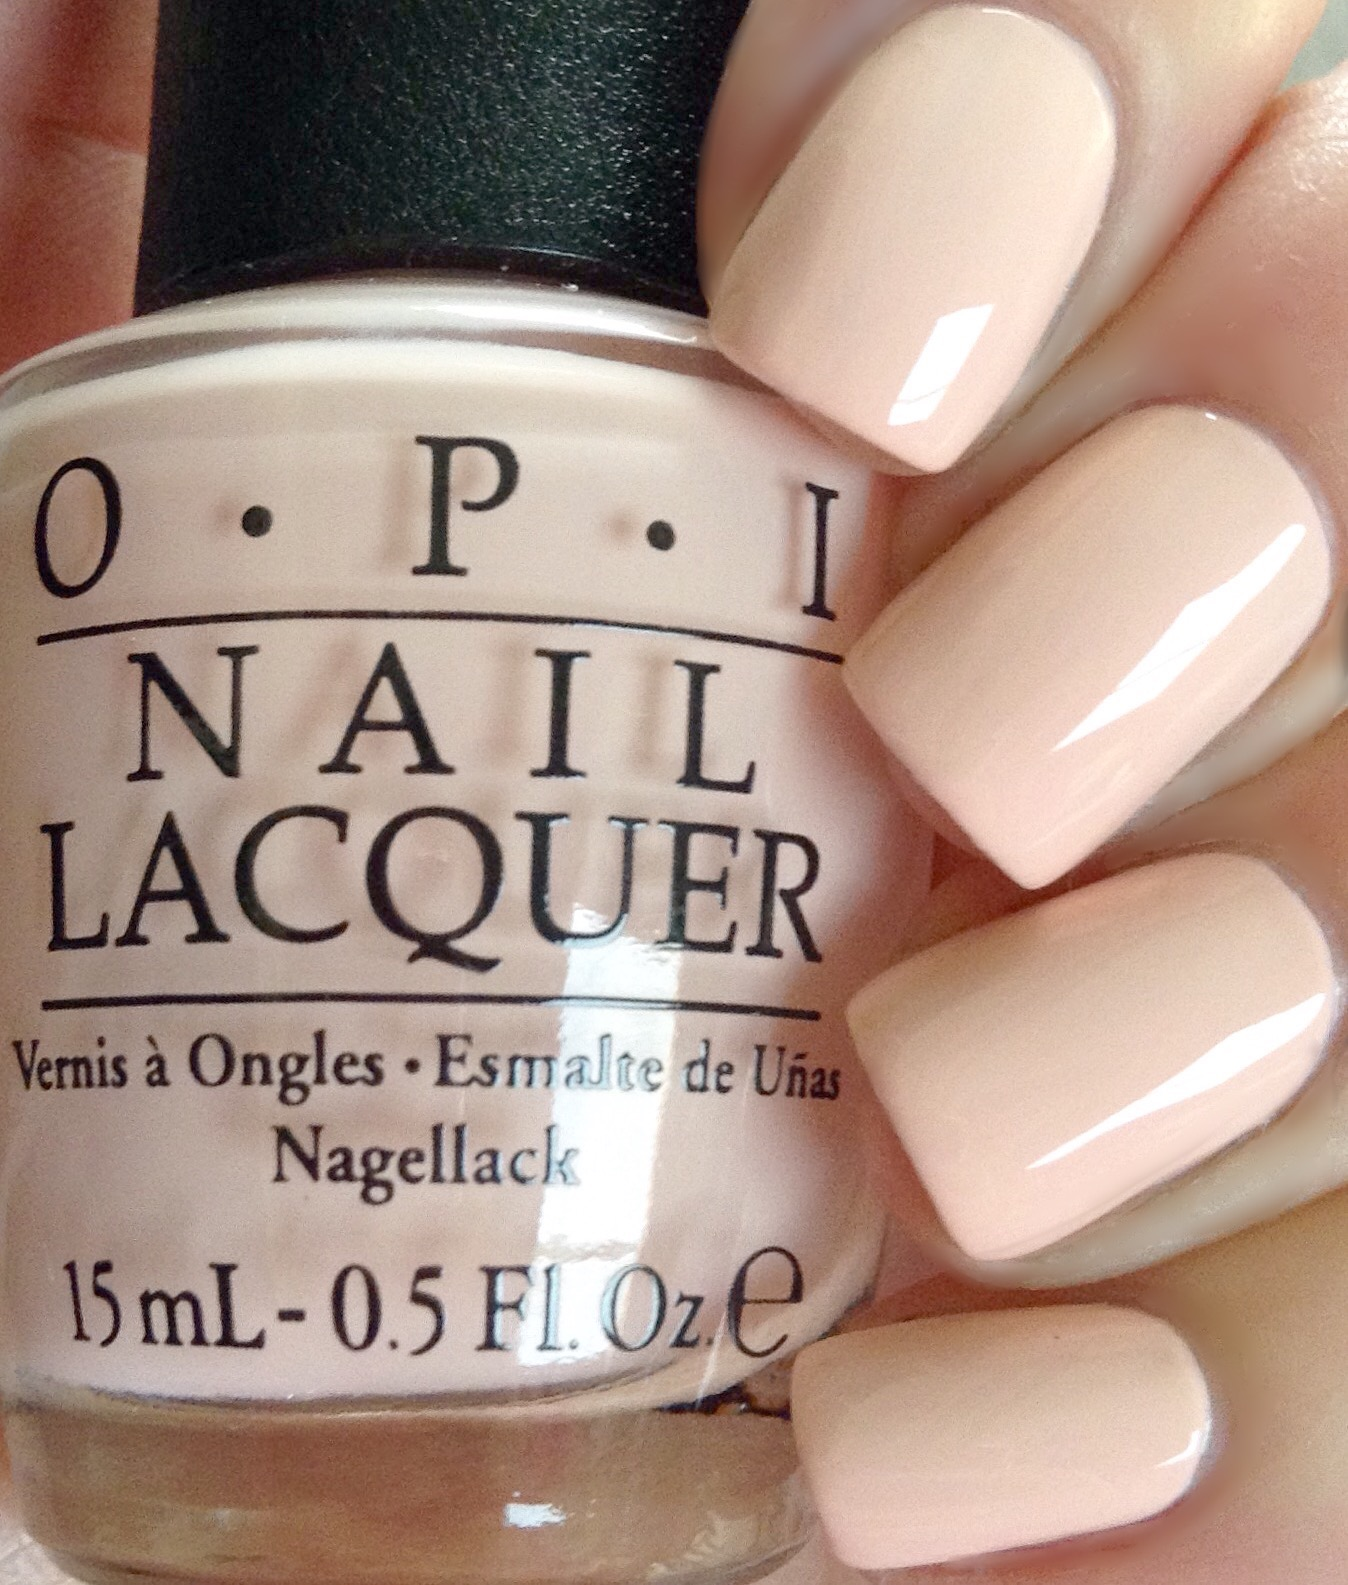 OPI Nail Lacquer, OPI Soft Shades Pastel Collection, One Chic Chick T73 0.5 Fluid Ounce images